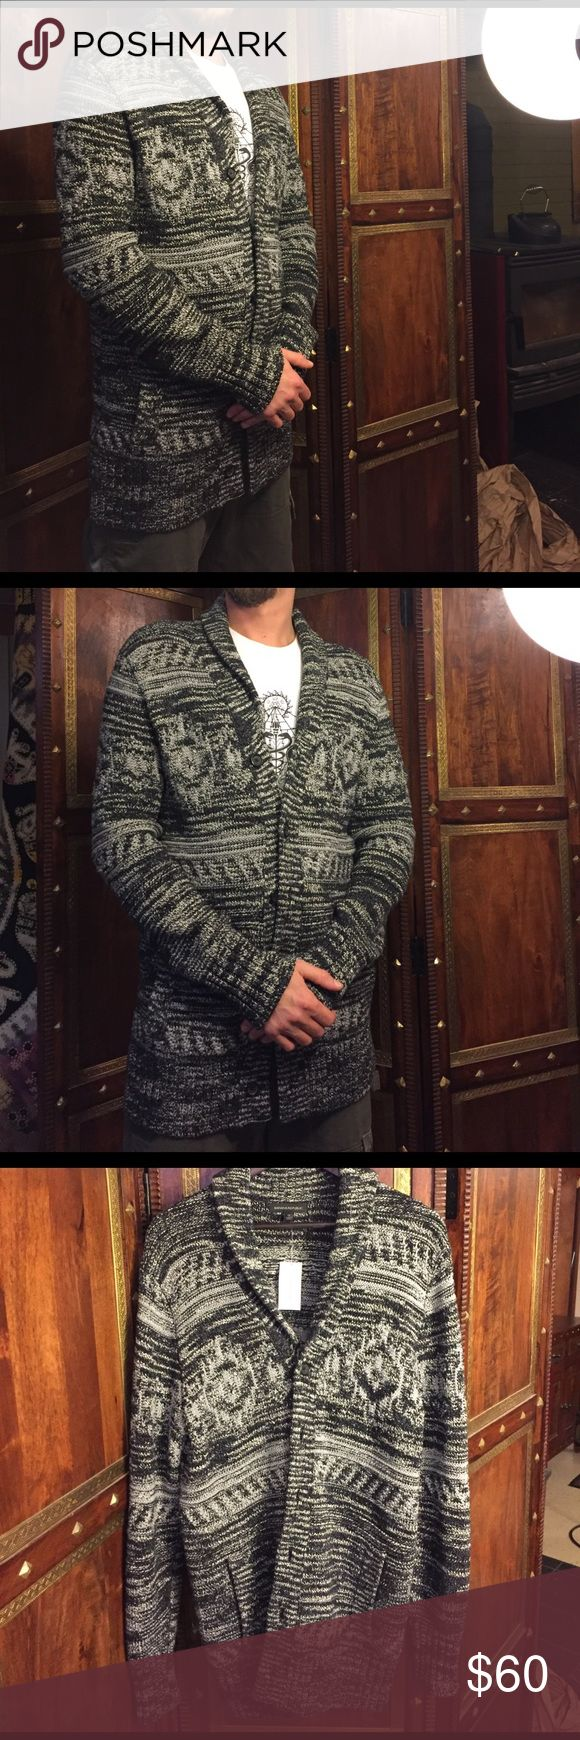 Banana Republic Men's Shawl Cardigan Banana Republic Men's Shawl Cardigan. Like new with tags. Never worn. Very comfy and stylish. Cotton poly blend. Size medium but fits like large. Banana Republic Sweaters Cardigan